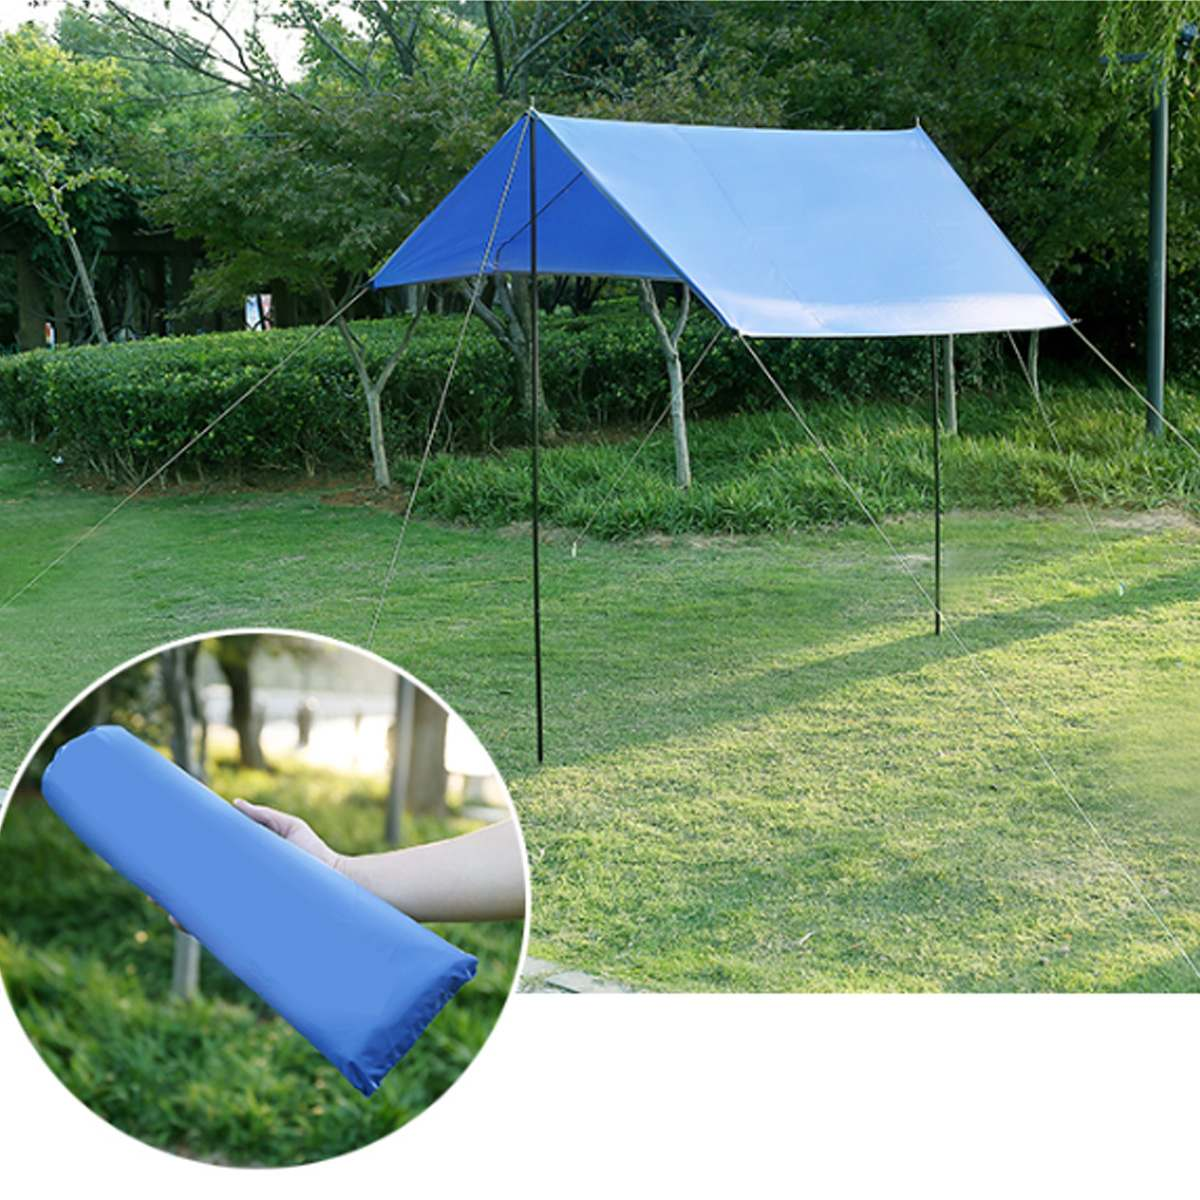 ALI shop ...  ... 33010964848 ... 3 ... Waterproof Tent Shade Beach Sun Shelter Tarp Ultralight UV Garden Awning Canopy Sunshade Outdoor Camping Hammock Rain Fly ...